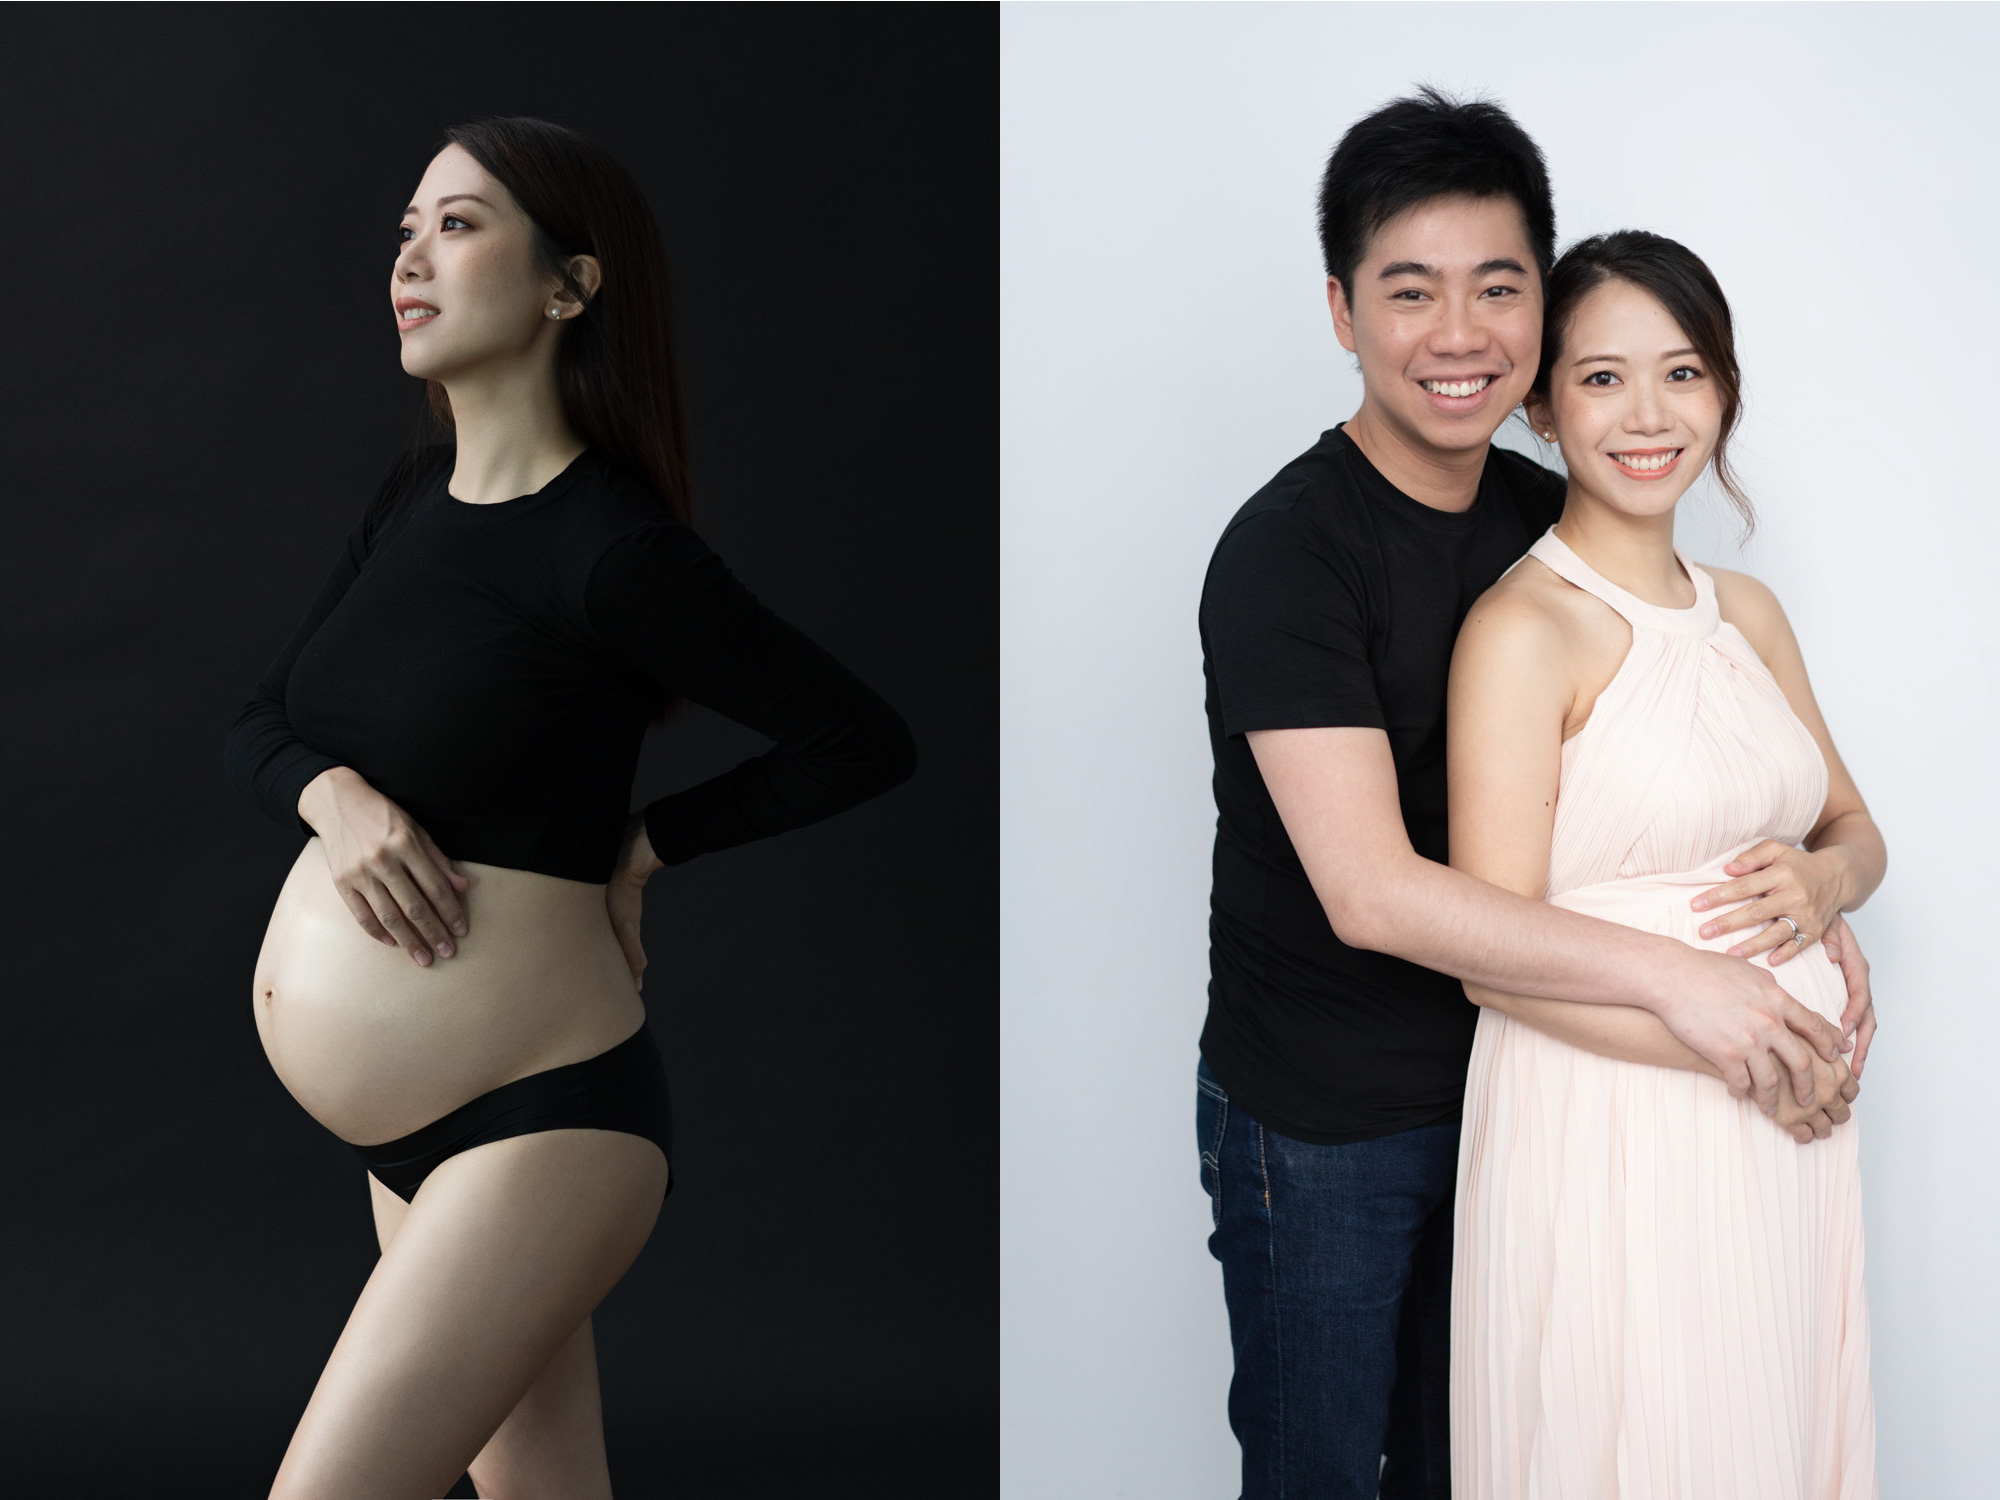 hk hong kong maternity photography fashion editorial